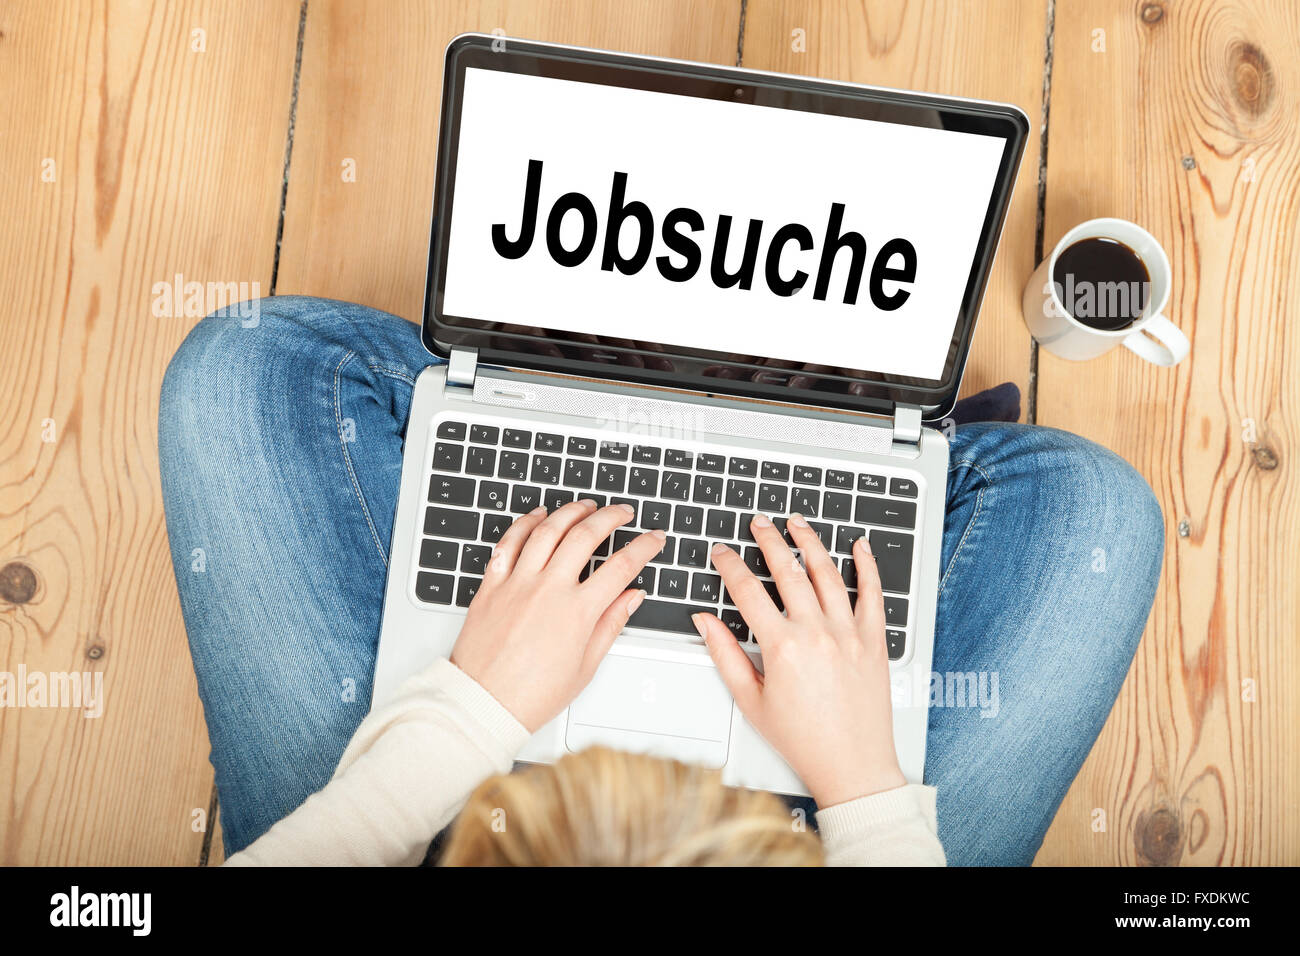 looking for a job (in german) - Stock Image